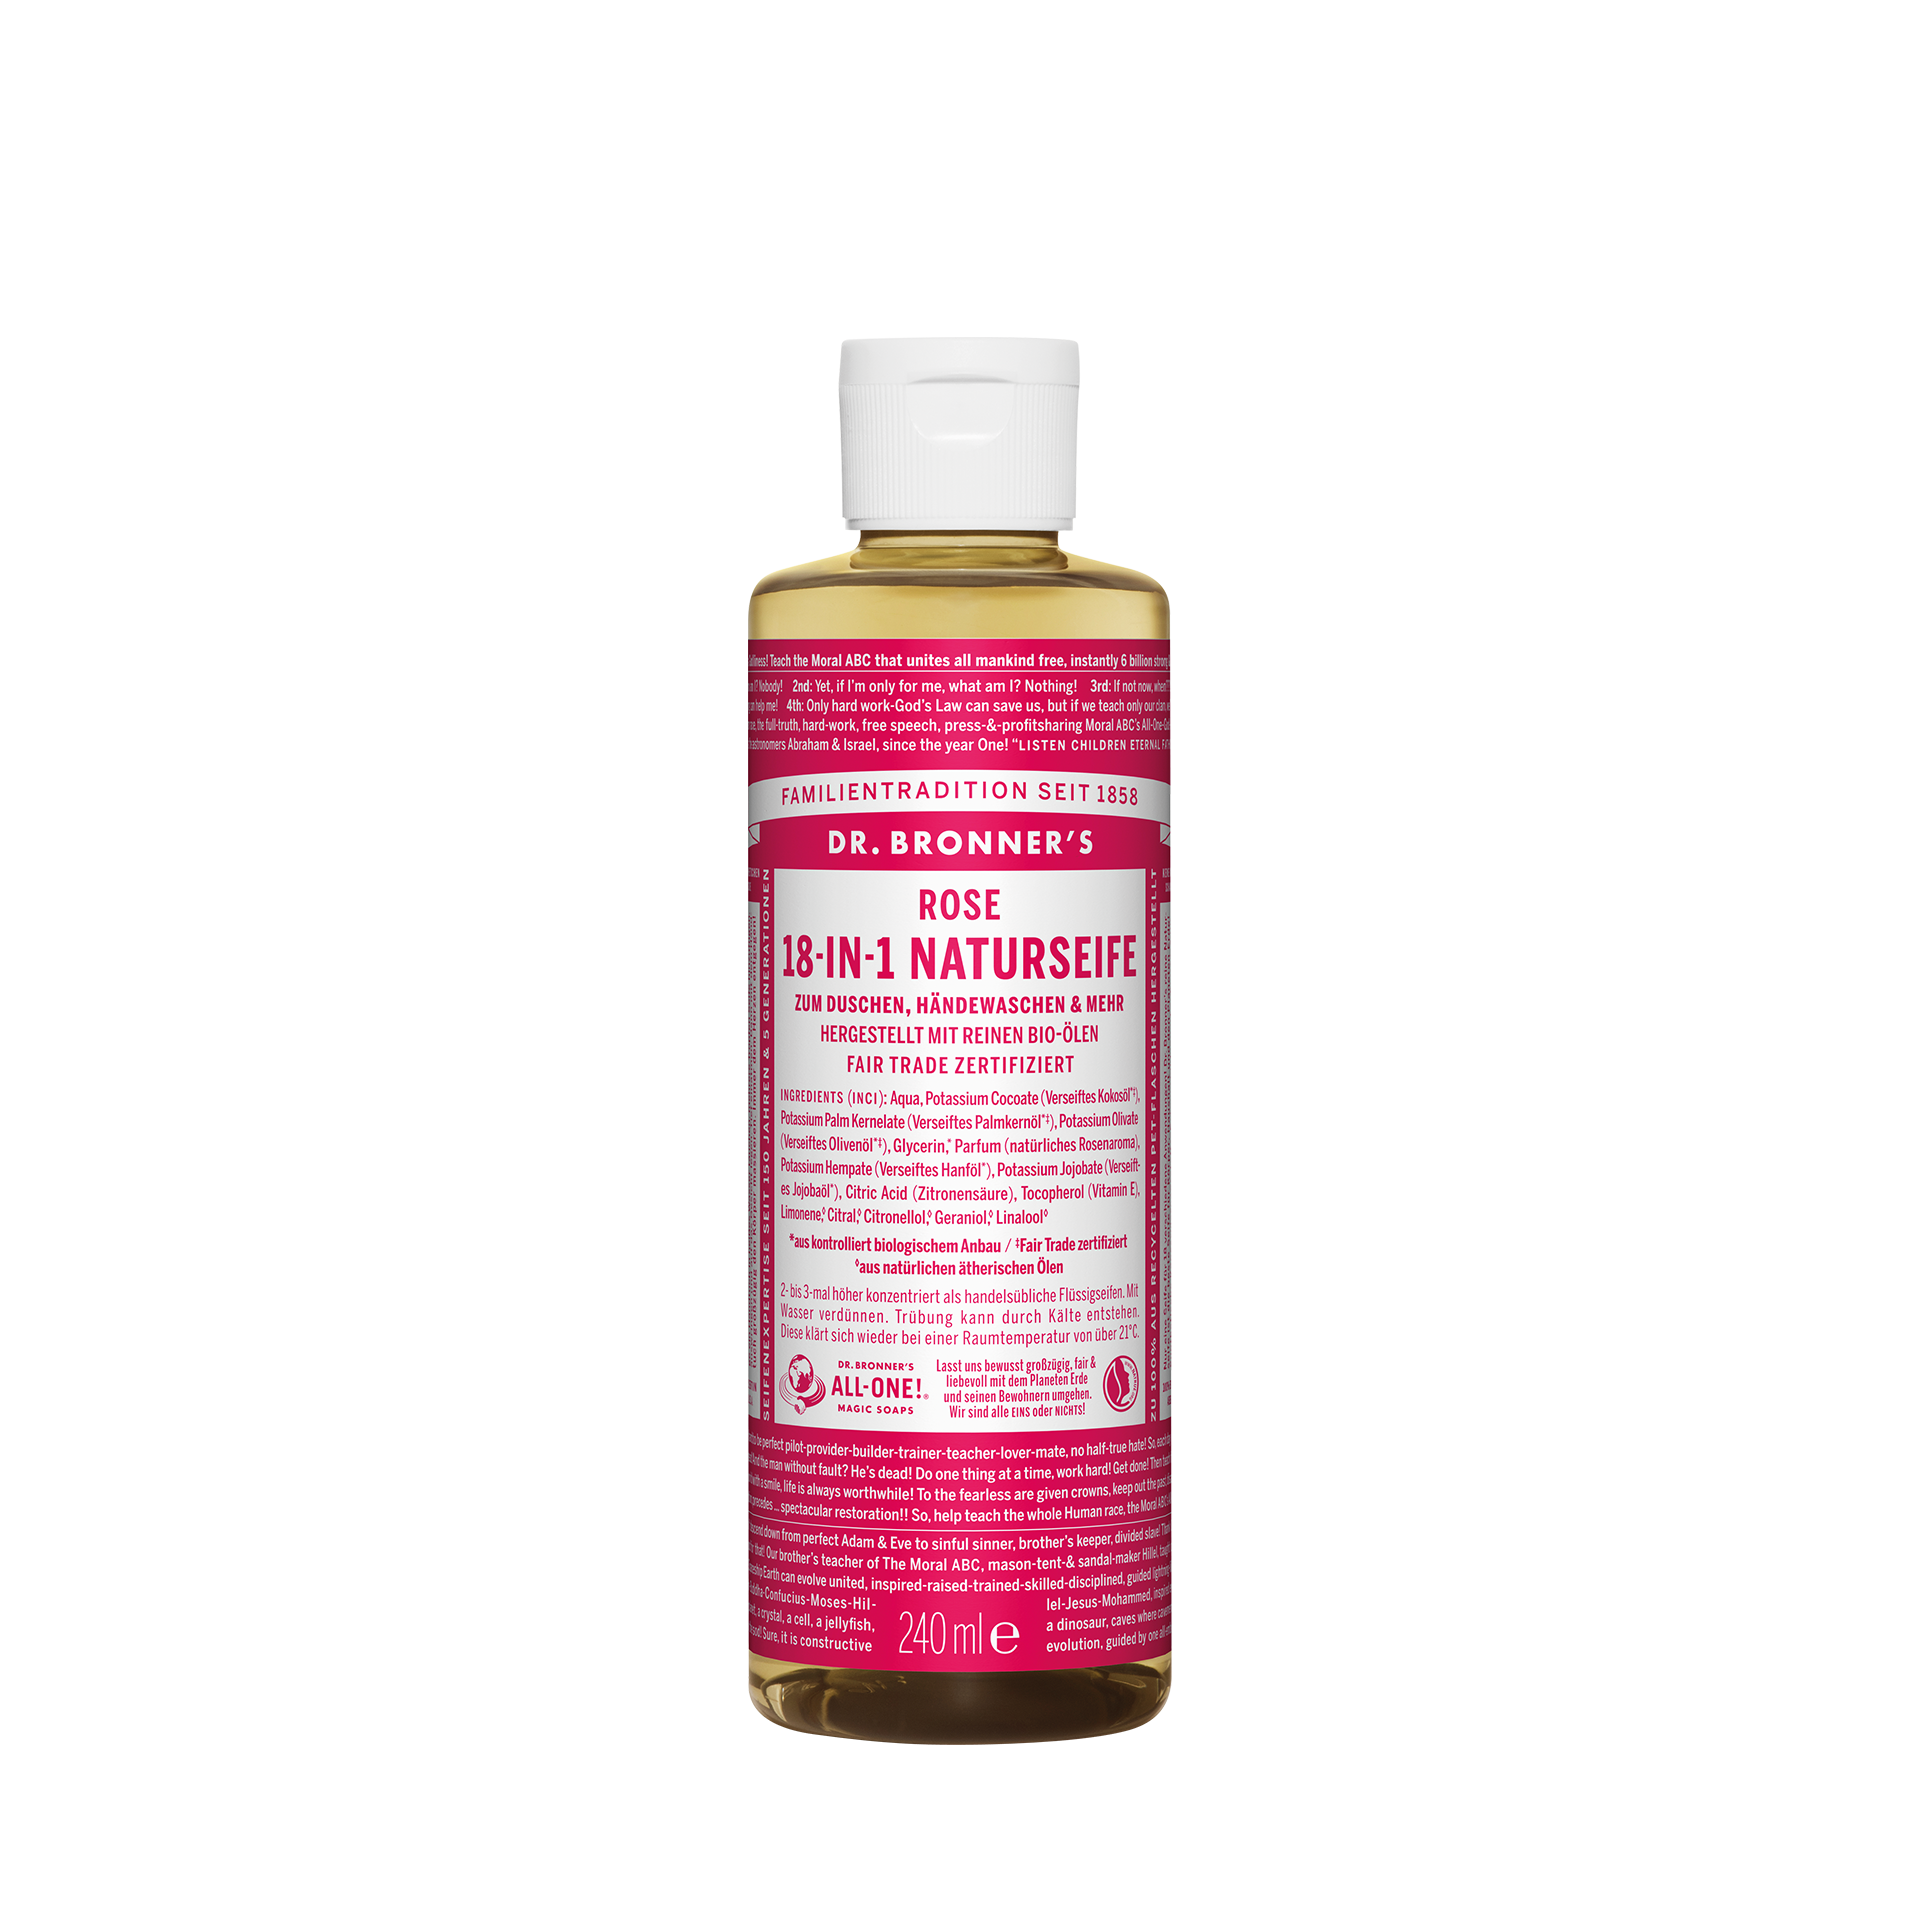 Dr. Bronner´s 18-in-1 Naturseife, Rose, 240 ml